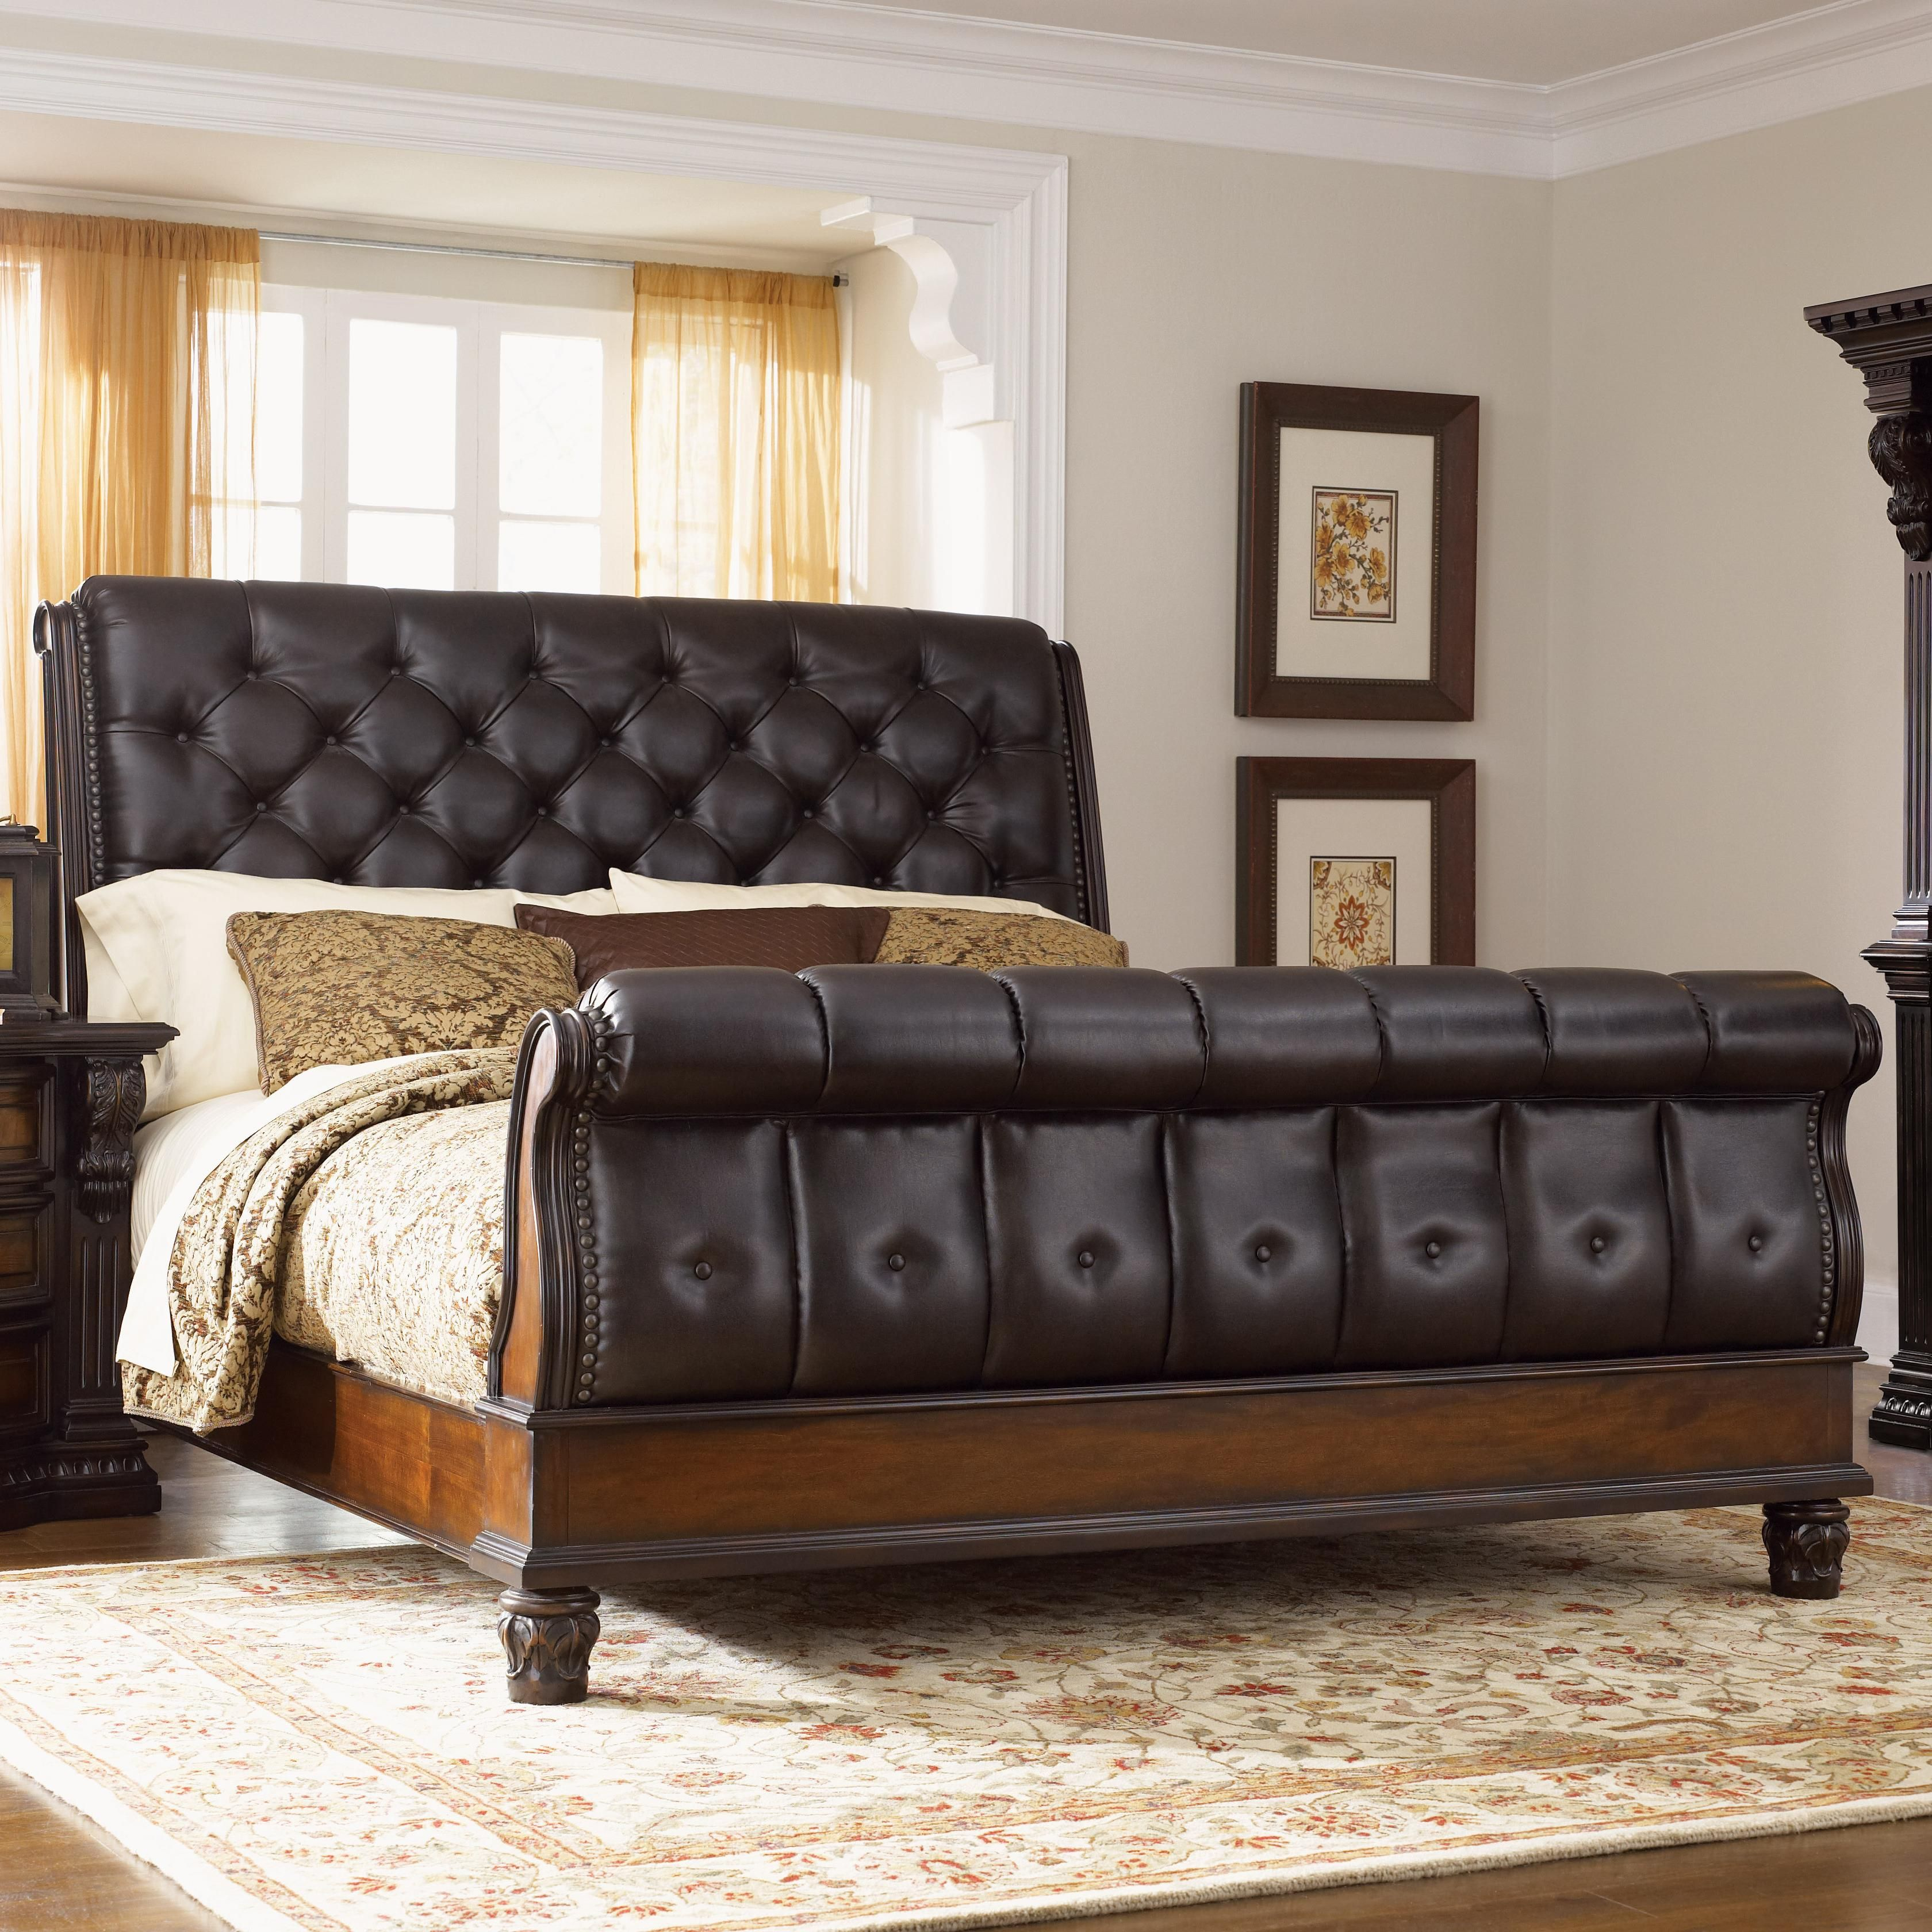 Grand Estates Queen Sleigh Bed W Leather Upholstery By Fairmont Designs At Royal Furniture California King Bedroom Sets Bedroom Furniture Sets Bedroom Set